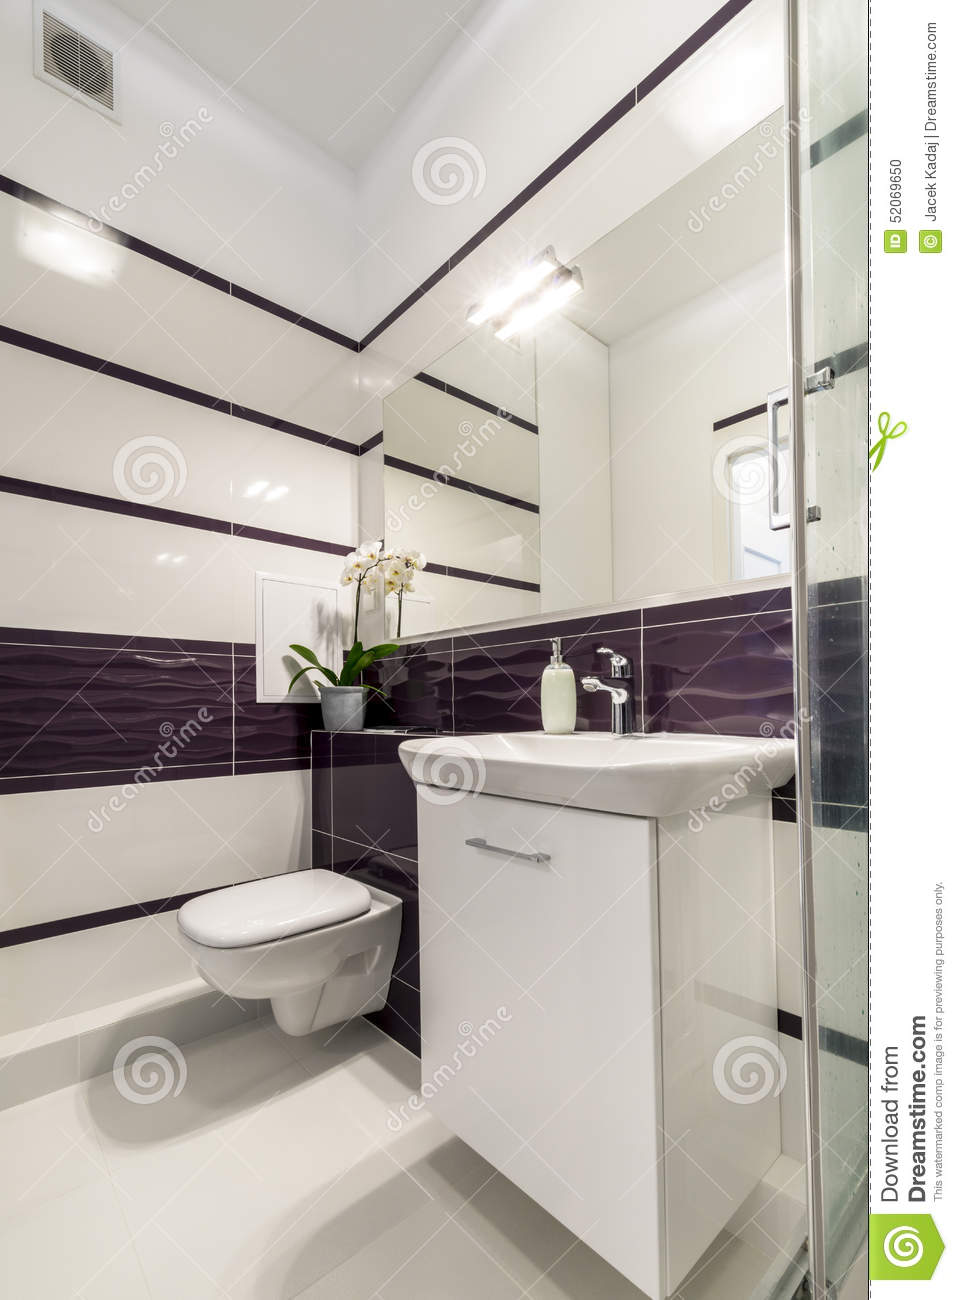 salle de bains moderne dans le style blanc et violet photo stock image du essuie toilette. Black Bedroom Furniture Sets. Home Design Ideas